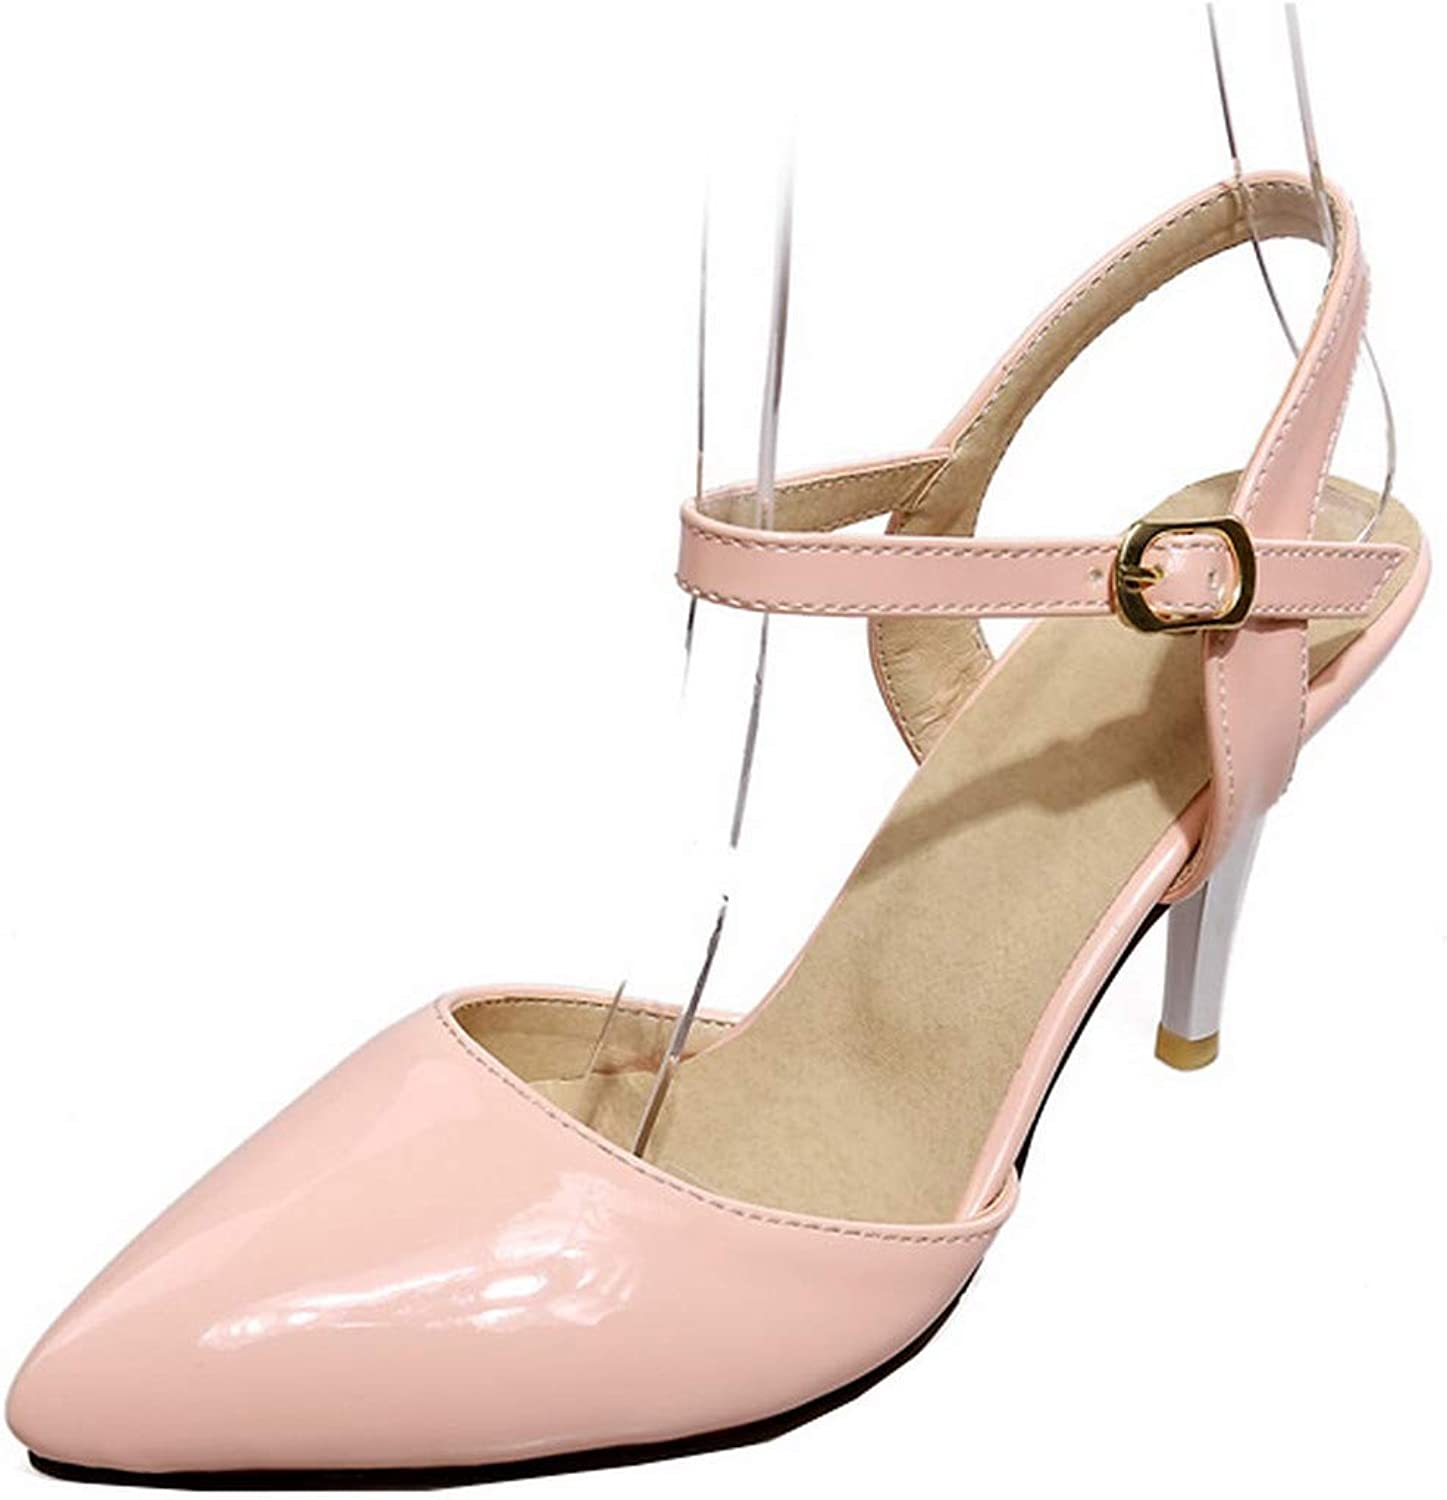 WeenFashion Women's Pointed Closed Toe Buckle Patent Leather Solid Pumps-shoes,AMGDX007139